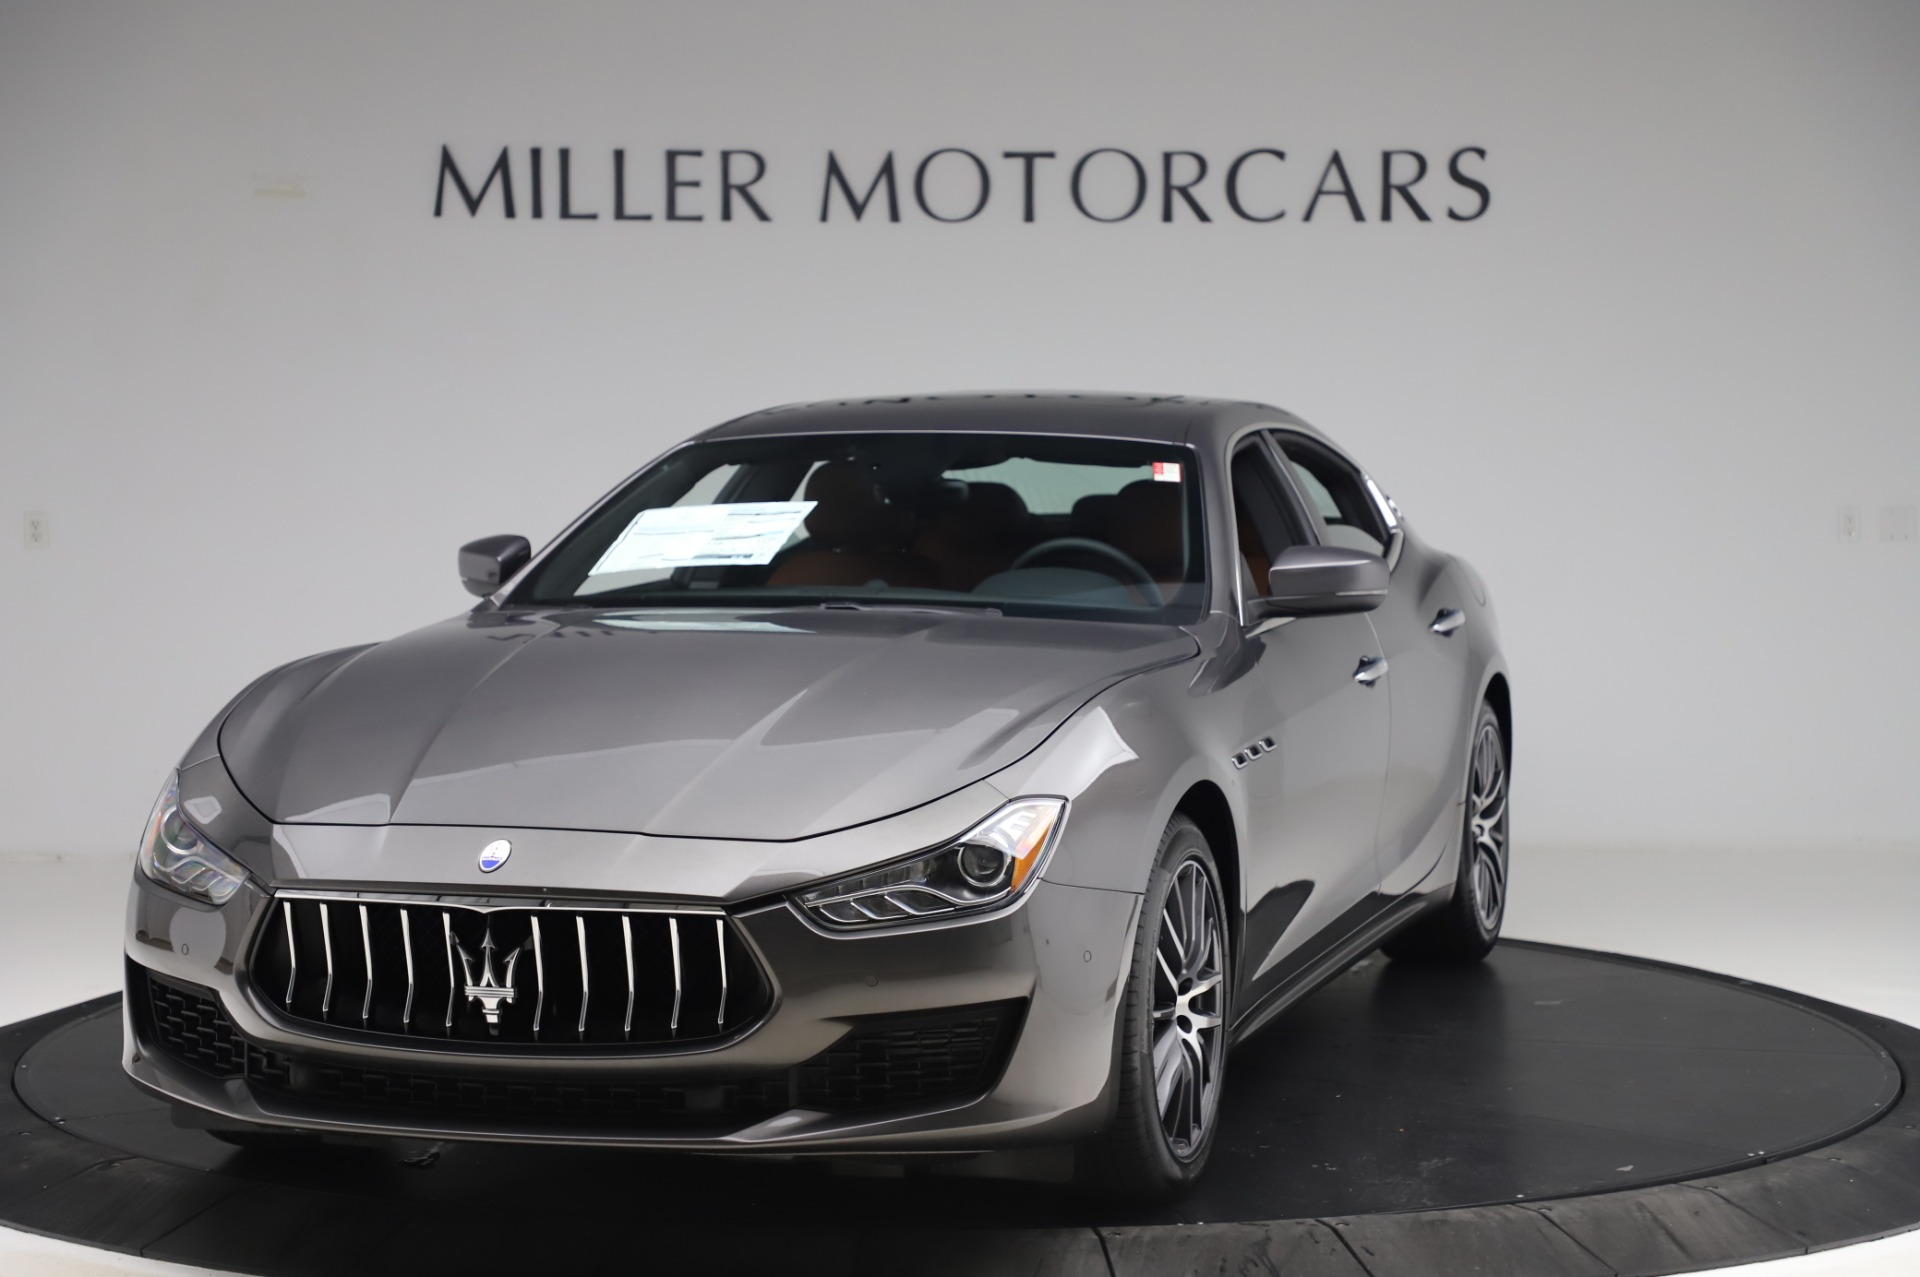 New 2020 Maserati Ghibli S Q4 for sale $82,385 at Rolls-Royce Motor Cars Greenwich in Greenwich CT 06830 1